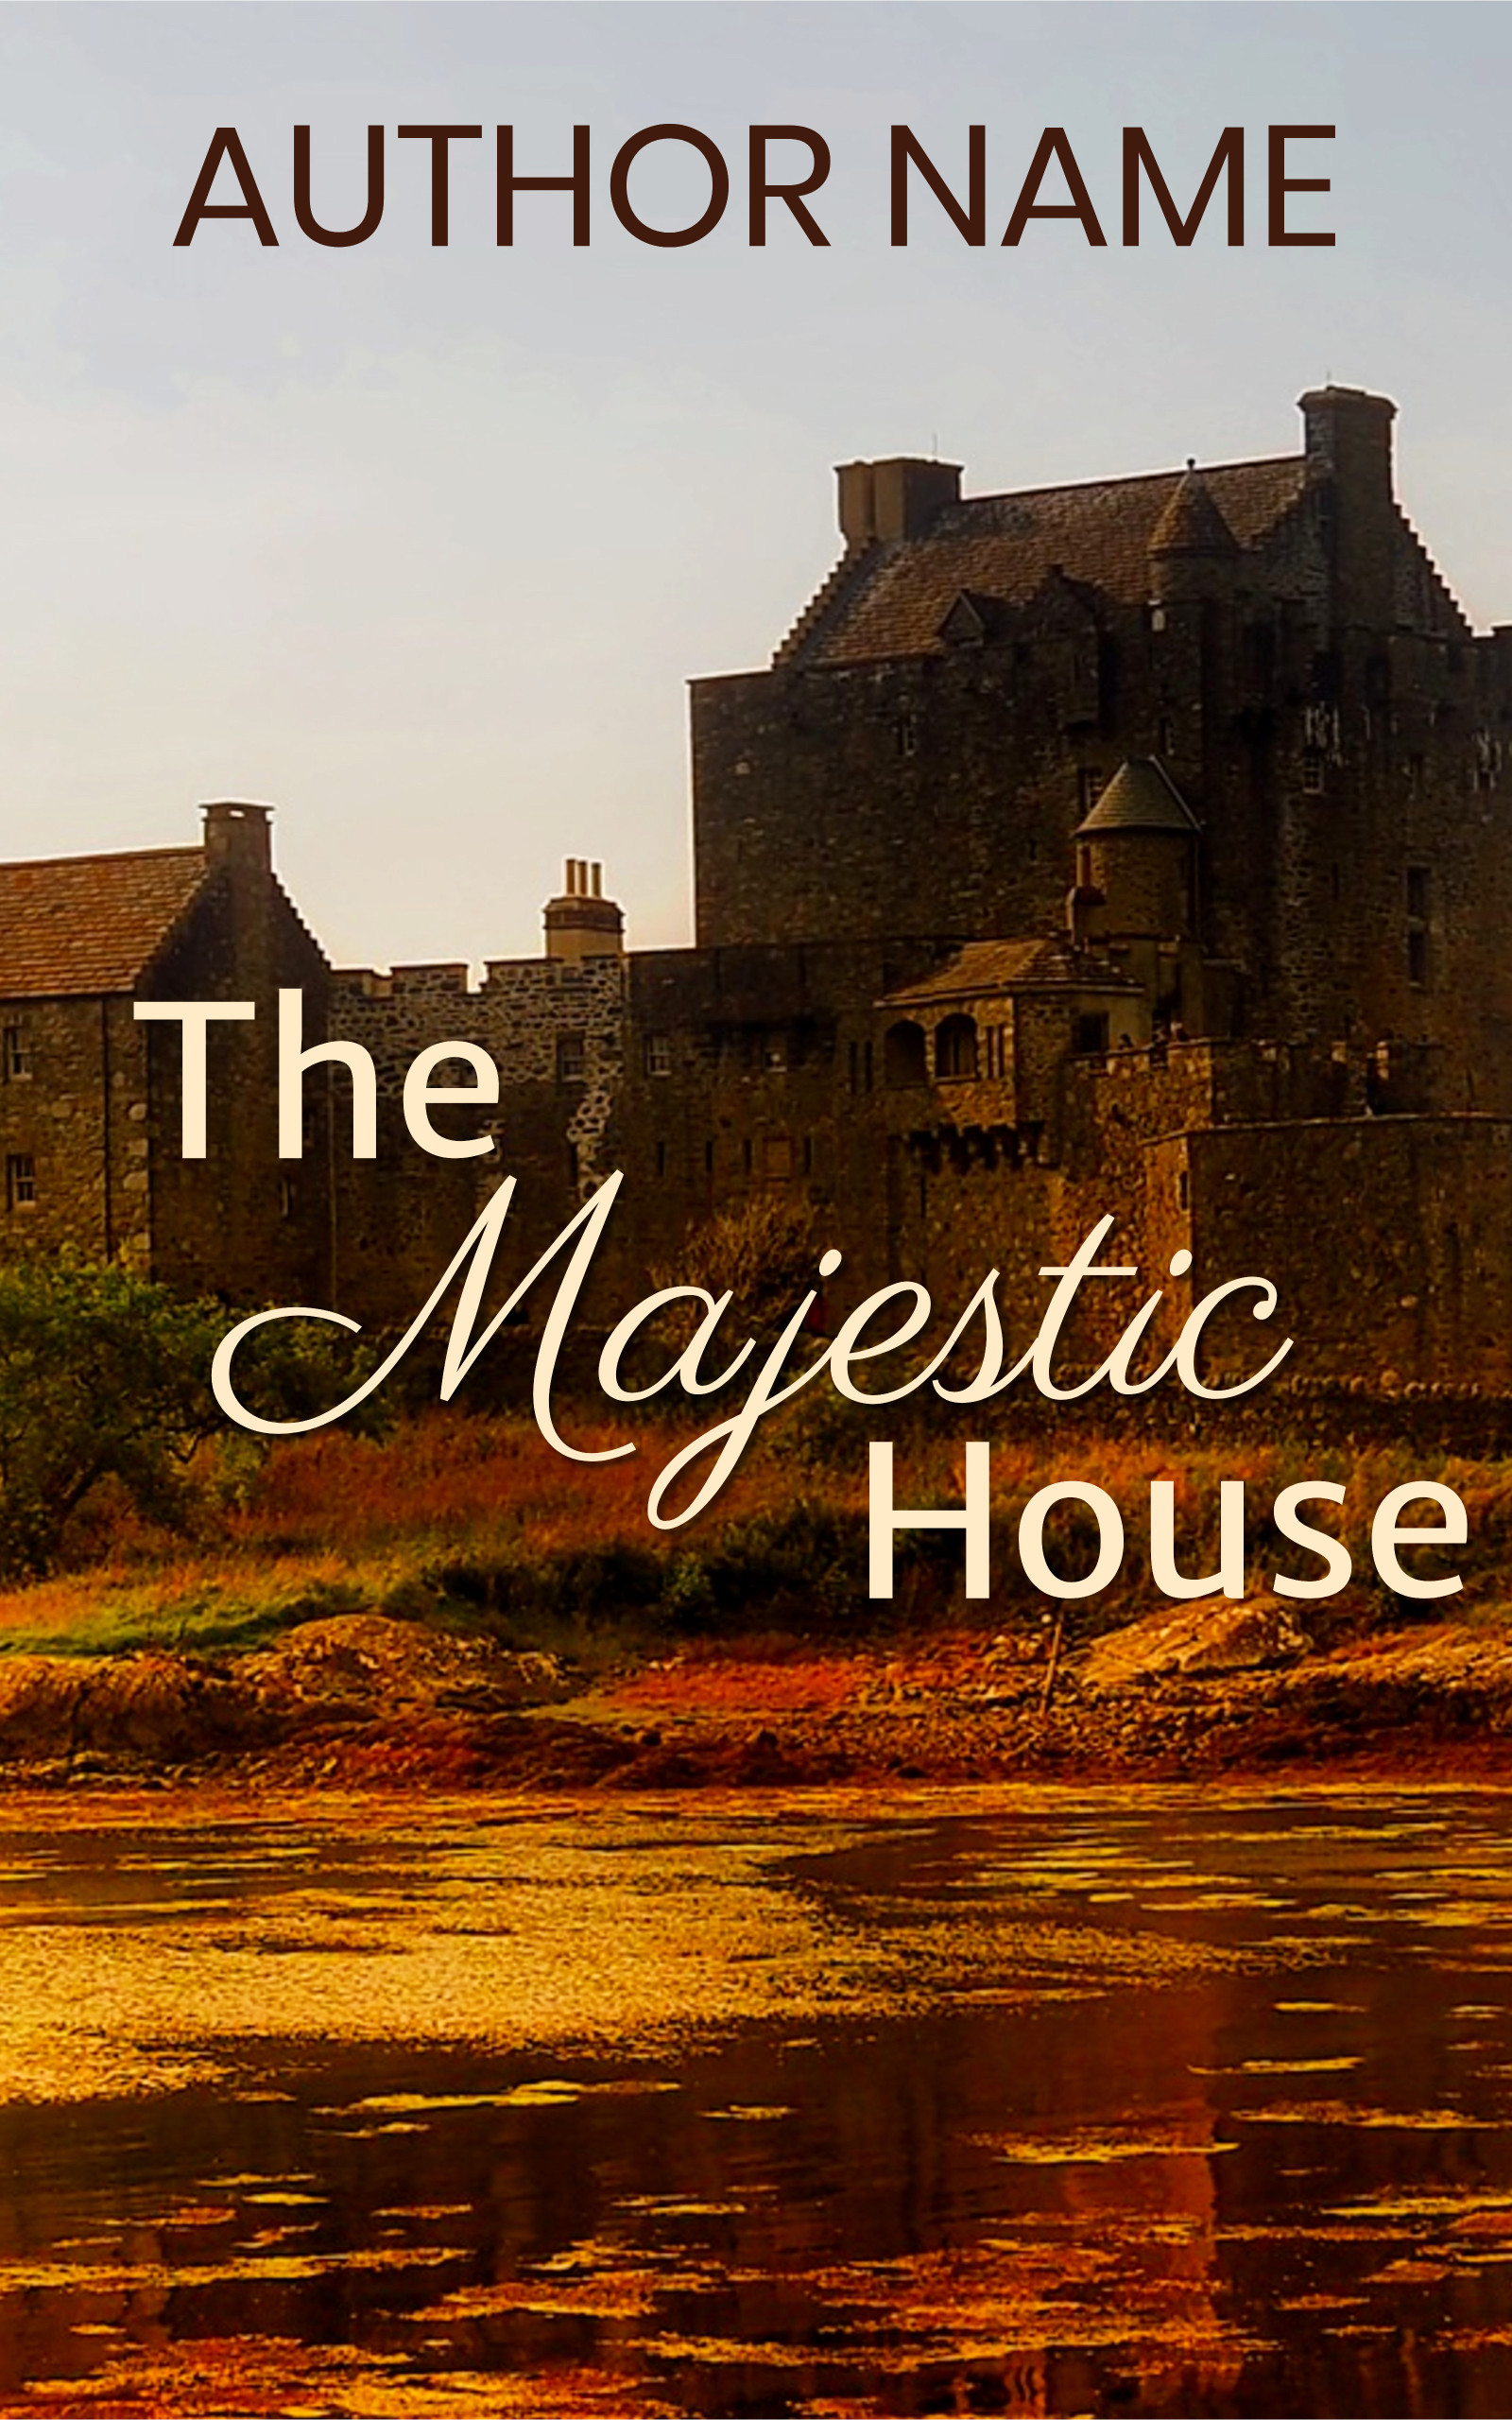 The majestic house